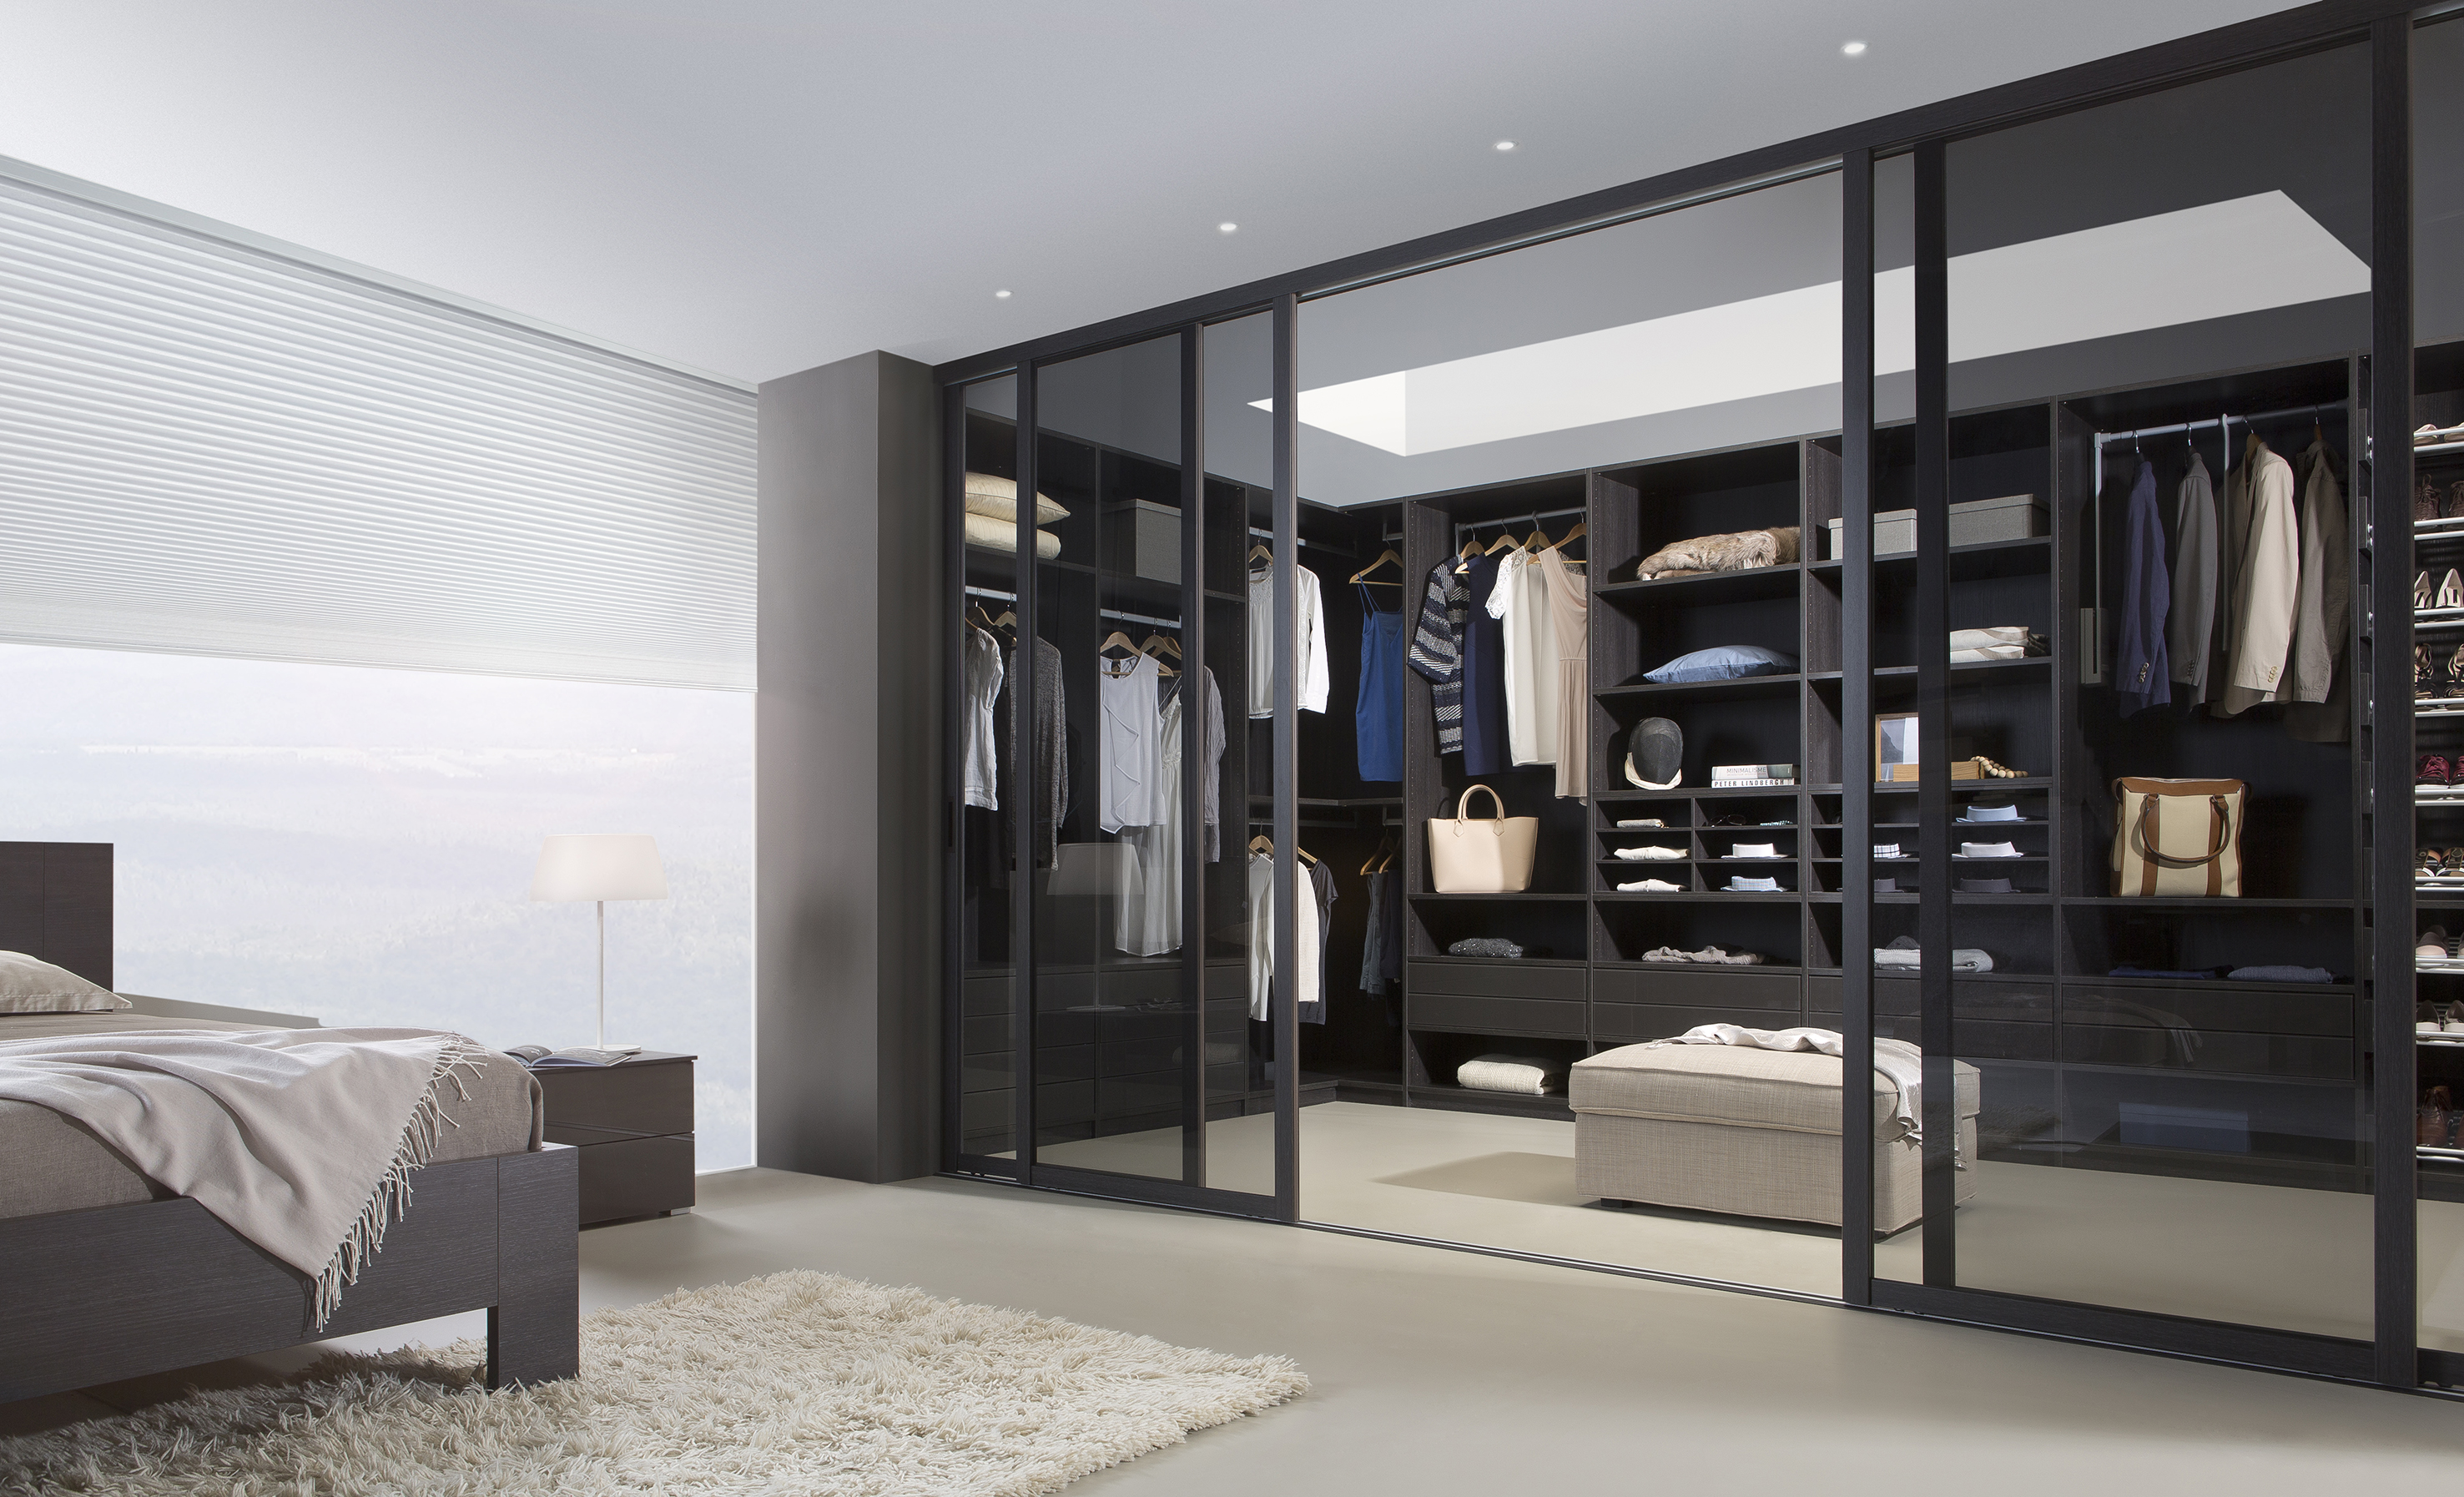 begehbarer kleiderschrank ma e neuesten design kollektionen f r die familien. Black Bedroom Furniture Sets. Home Design Ideas